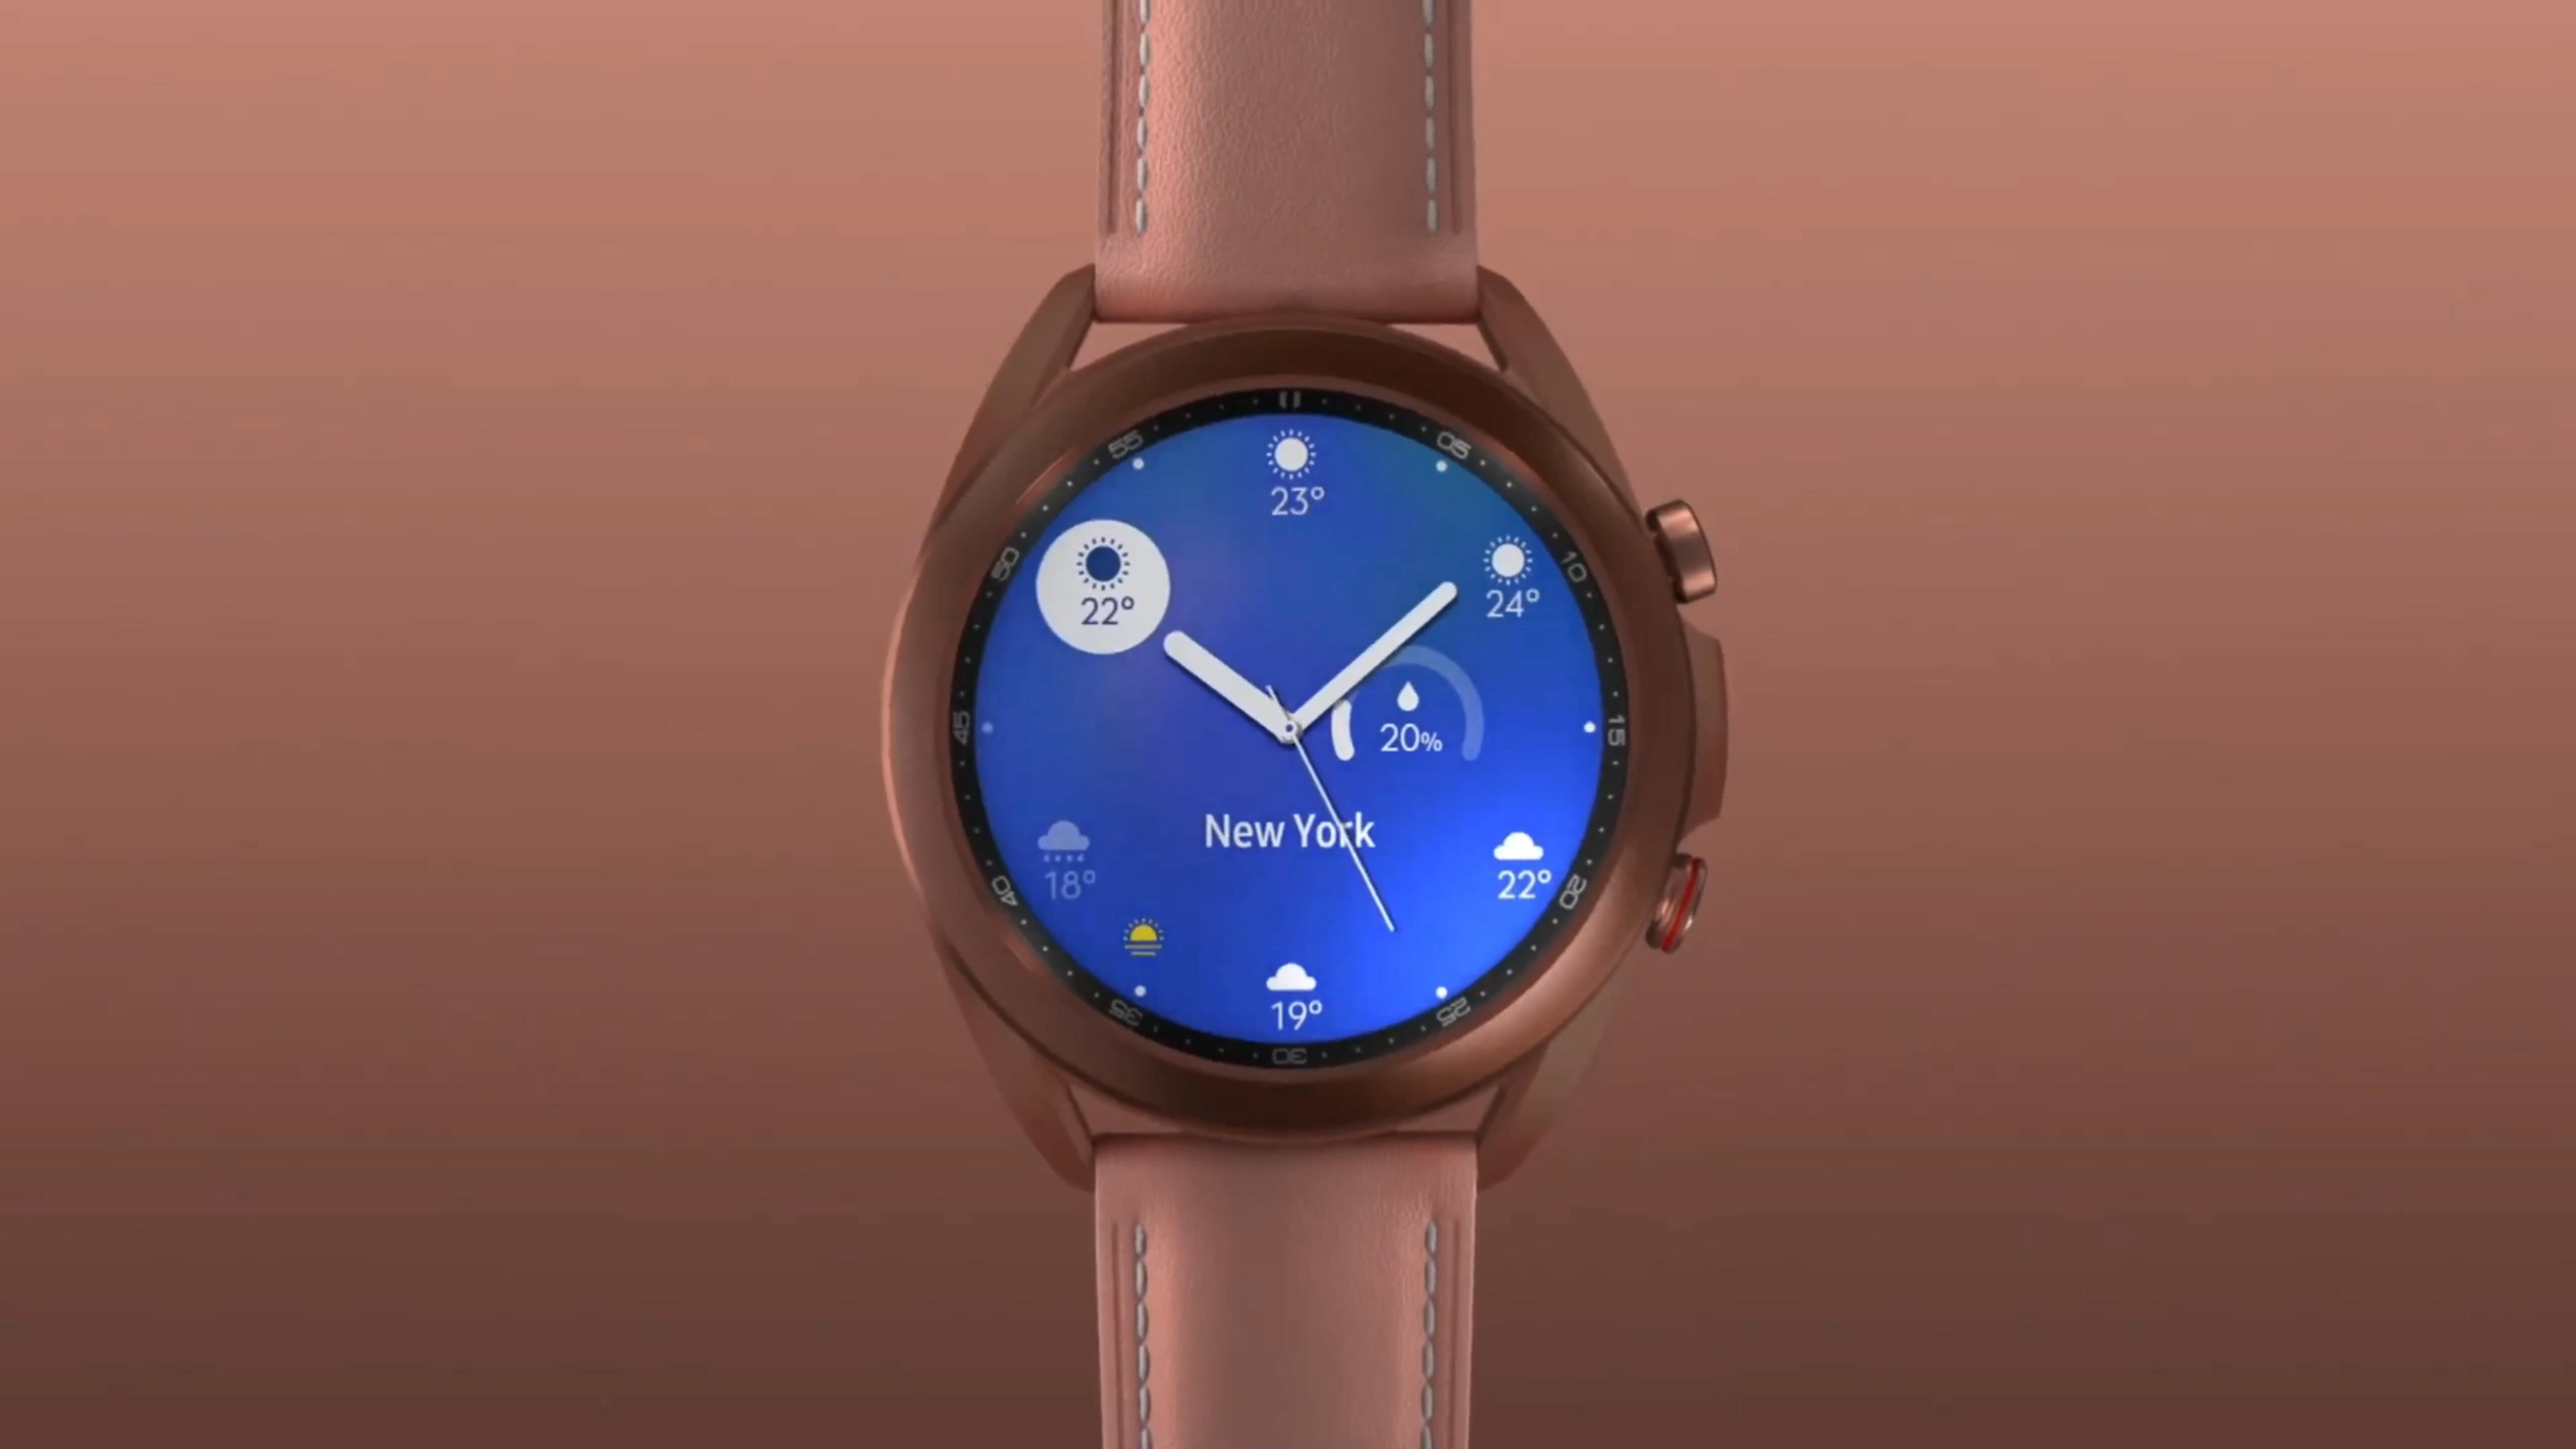 Video: The Galaxy Watch 3 looks great, but some health features will have to wait